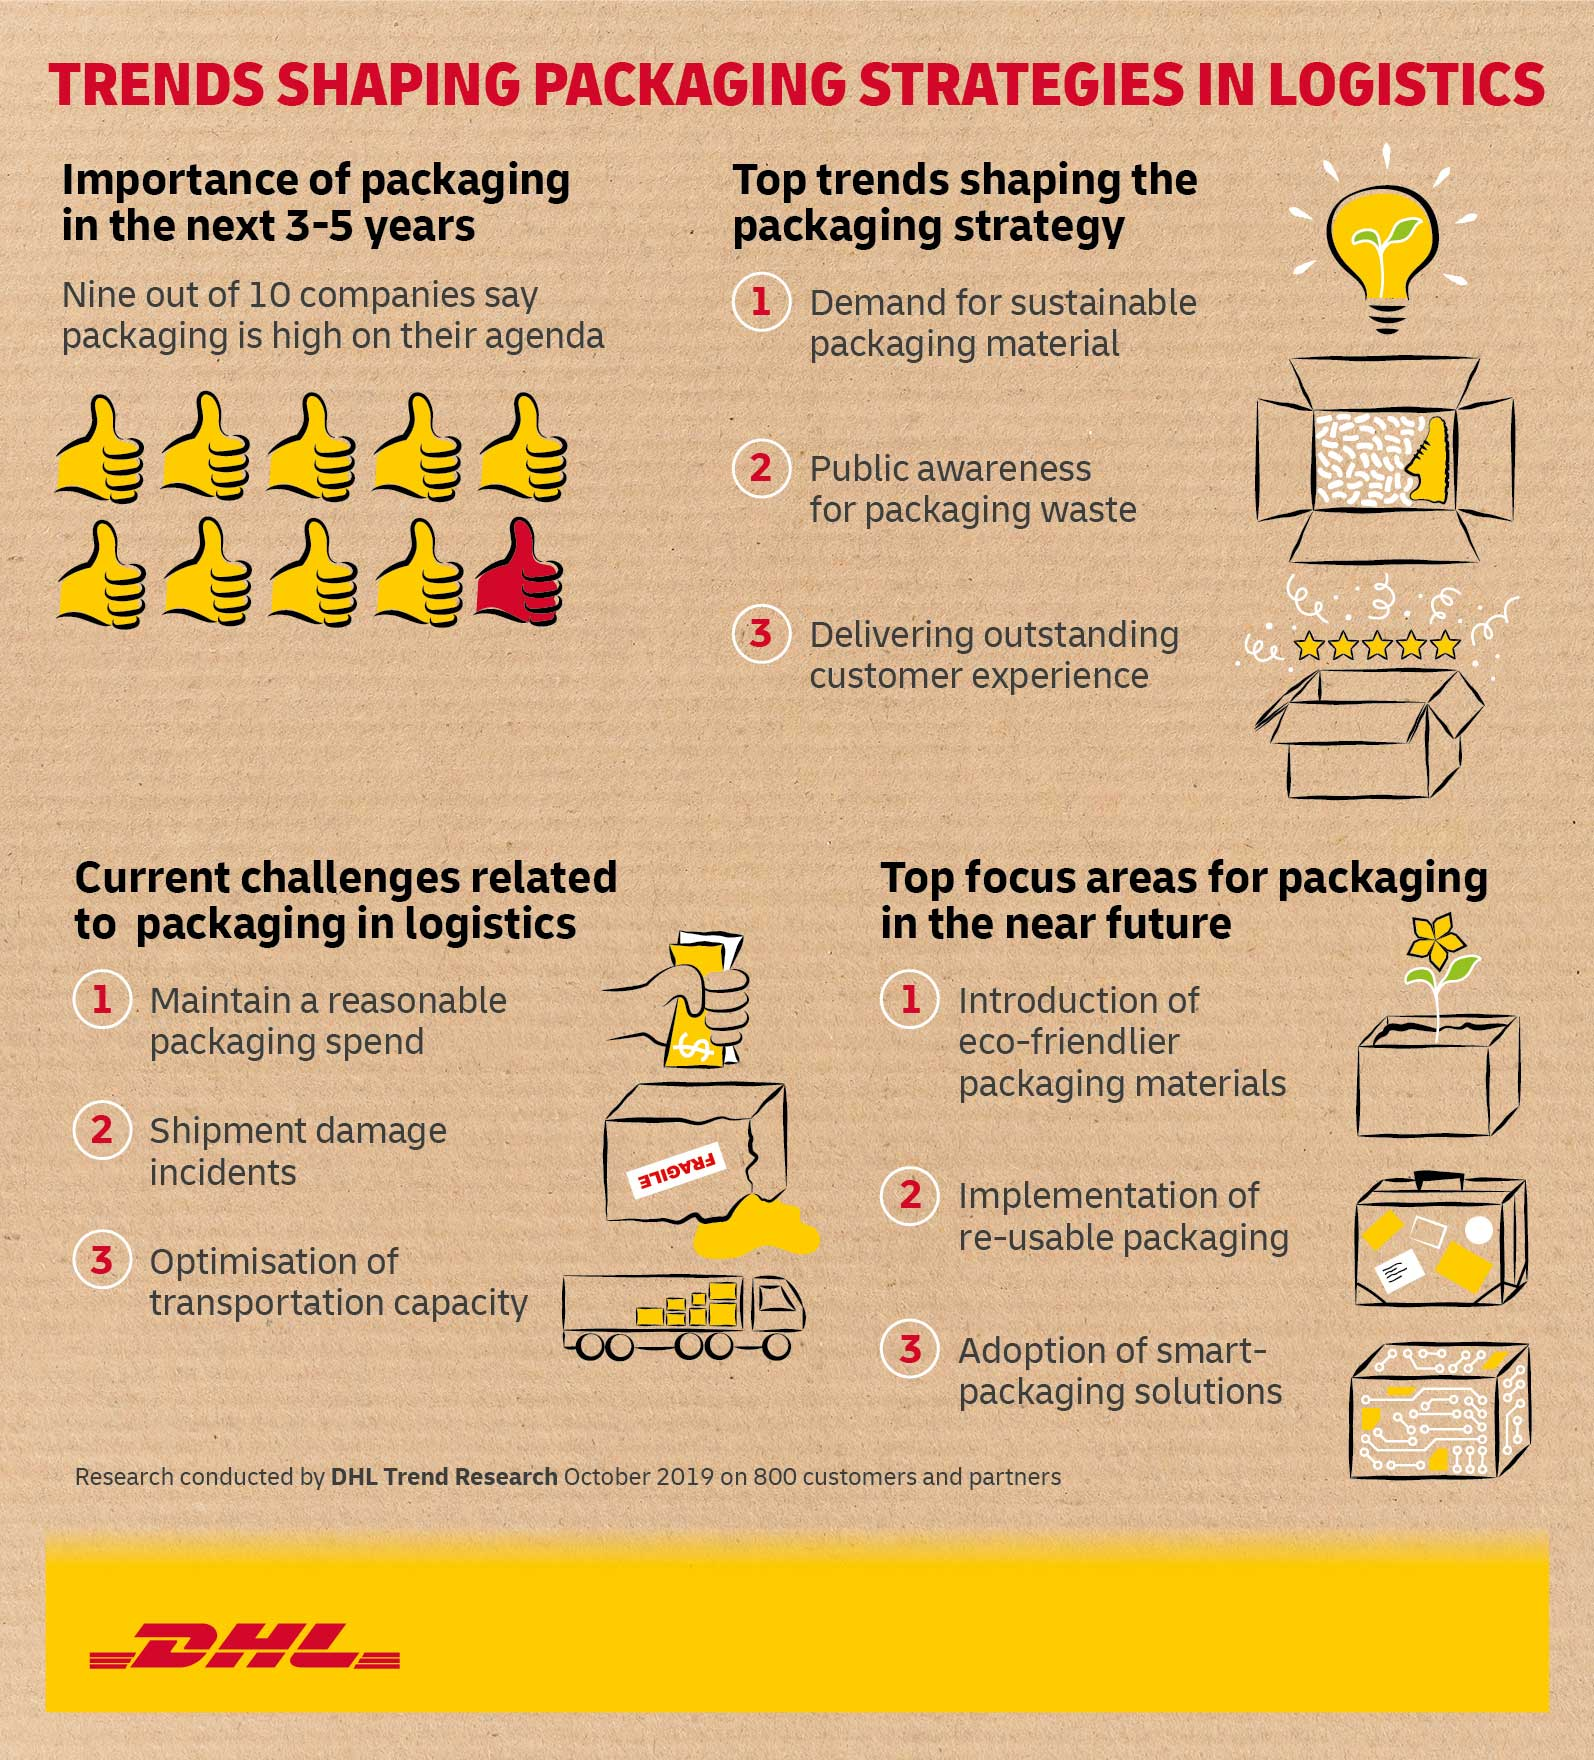 DHL Trend Report Discovers How E-commerce Era Drives Wave Of Sustainability And Efficiency - Brand Spur